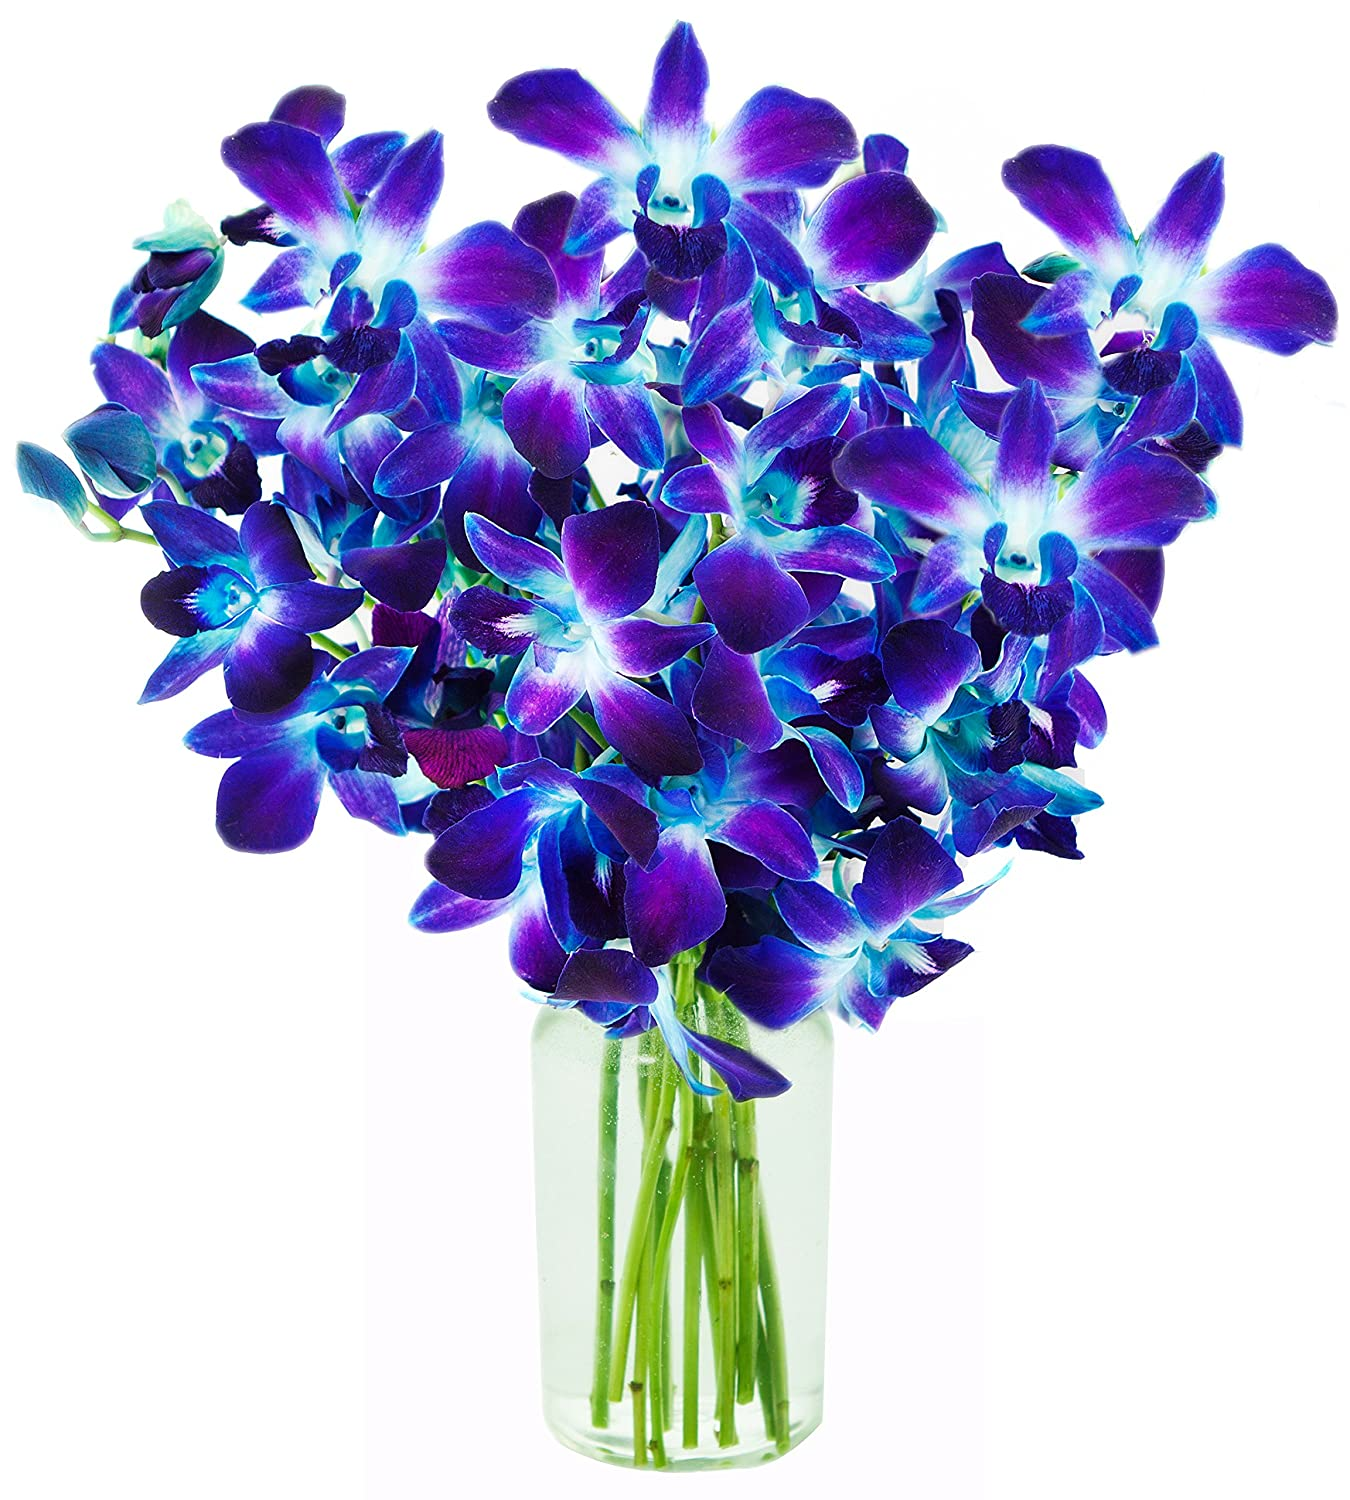 Amazon mothers day special kabloom exotic blue sapphire amazon mothers day special kabloom exotic blue sapphire orchid bouquet of 10 fresh blue dendrobium orchids from thailand with vase grocery izmirmasajfo Images